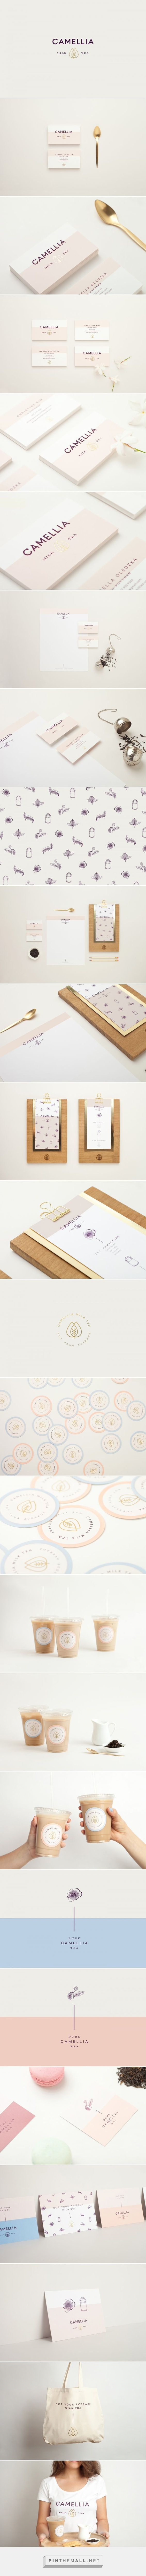 Camellia Milk Tea on Behance... - a grouped images picture - Pin Them All http://jrstudioweb.com/diseno-grafico/diseno-de-logotipos/